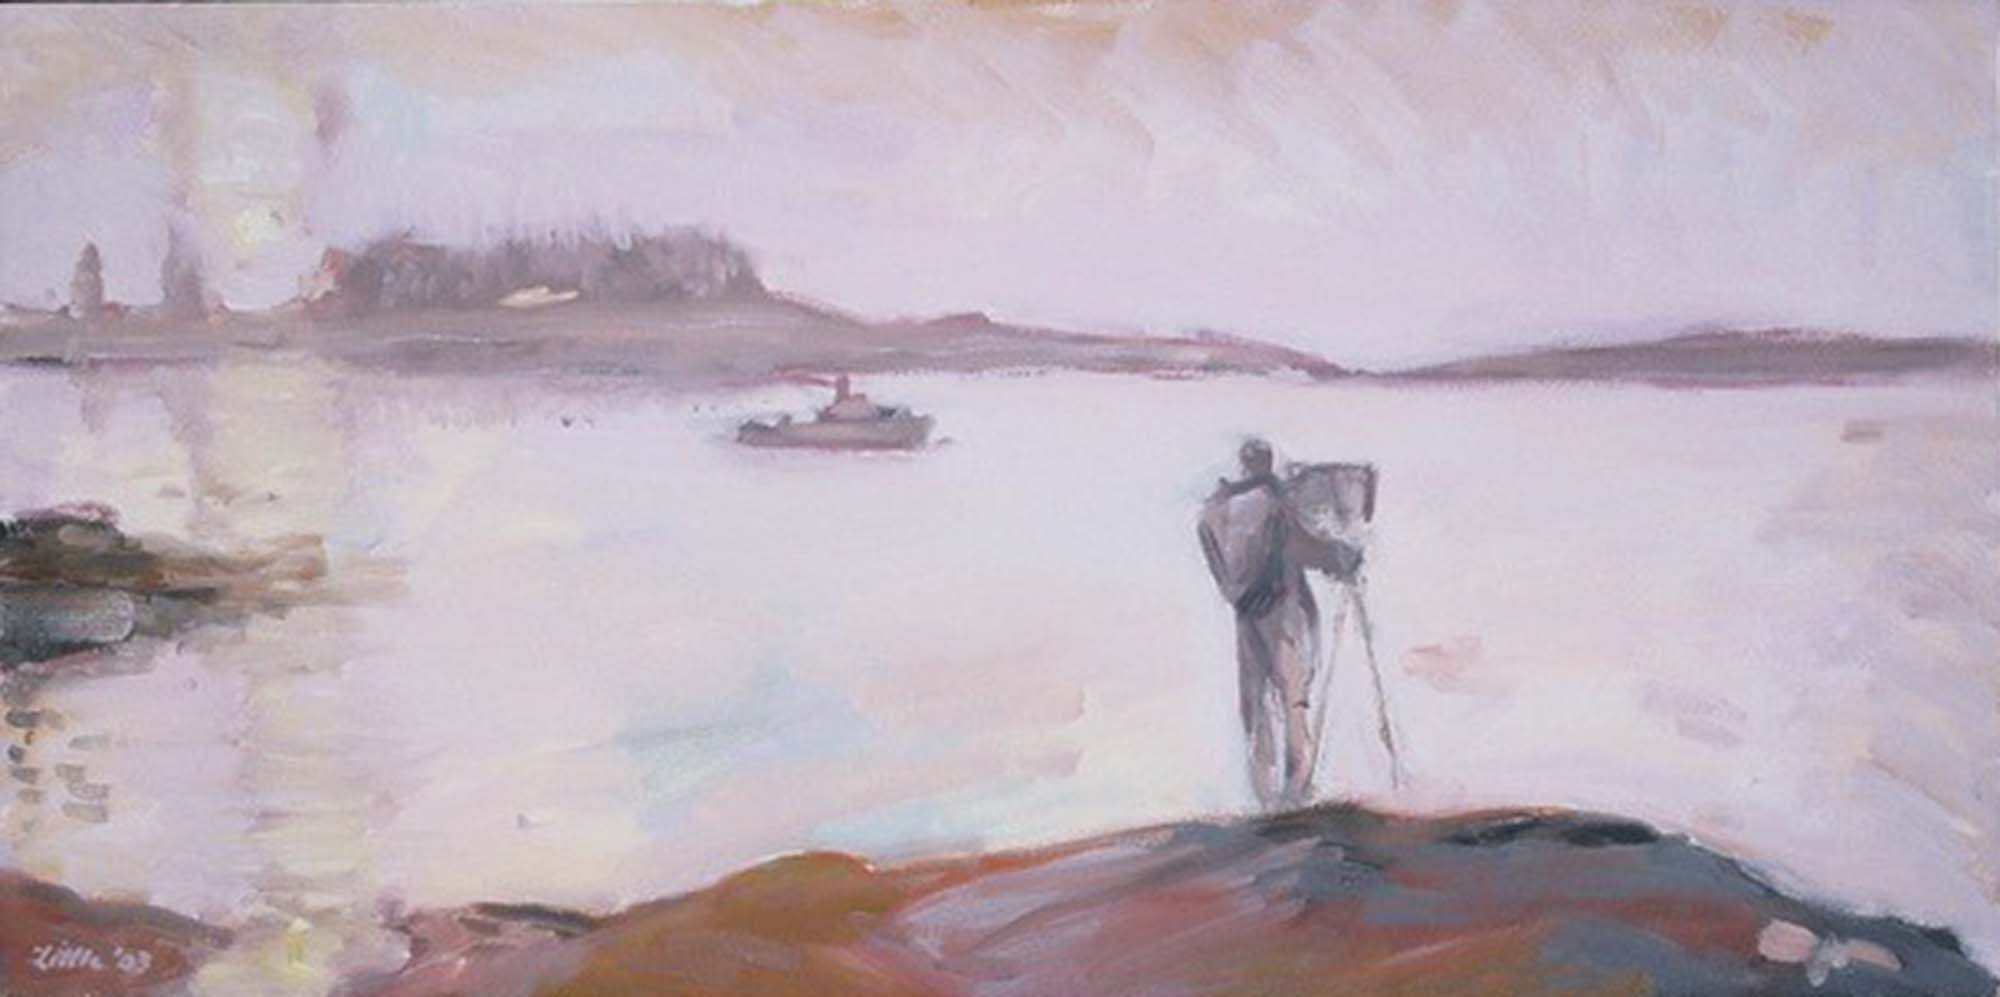 """David Little, """"Artist setting up easel in fog"""", Oil on canvas, 8 x 16 inches, 2010"""